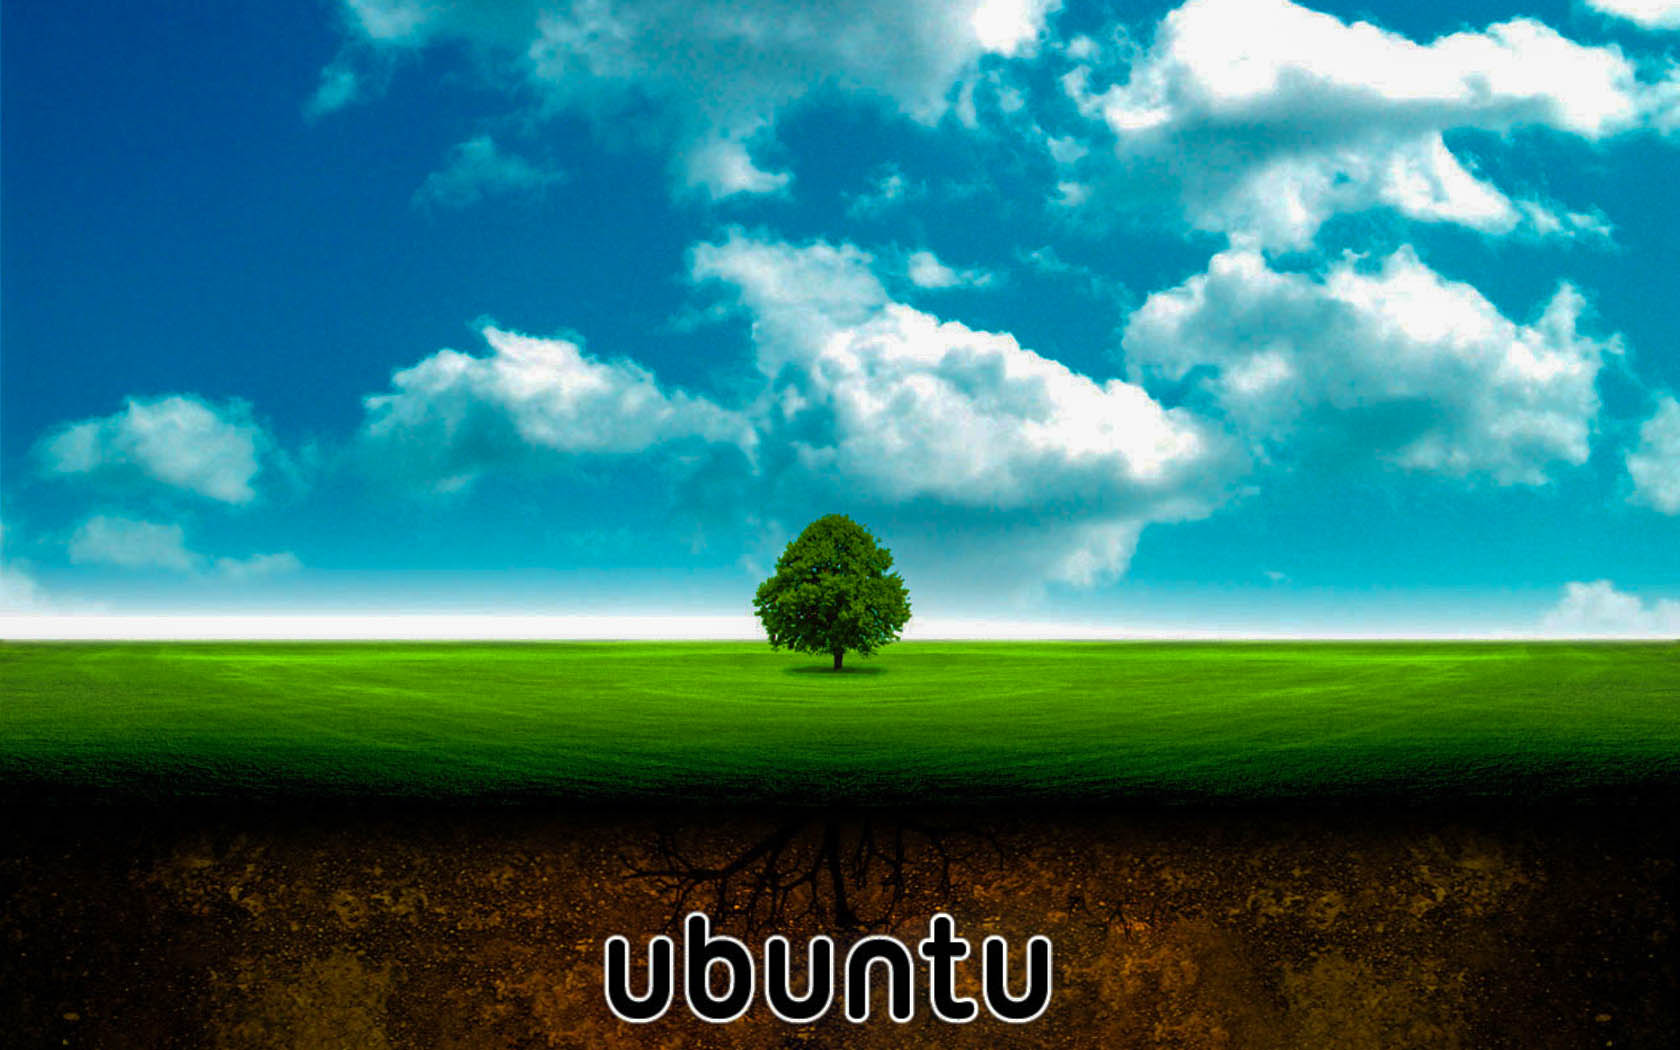 High Definition Wallpapers High: Ubuntu Awesome High Definition HD Wallpapers